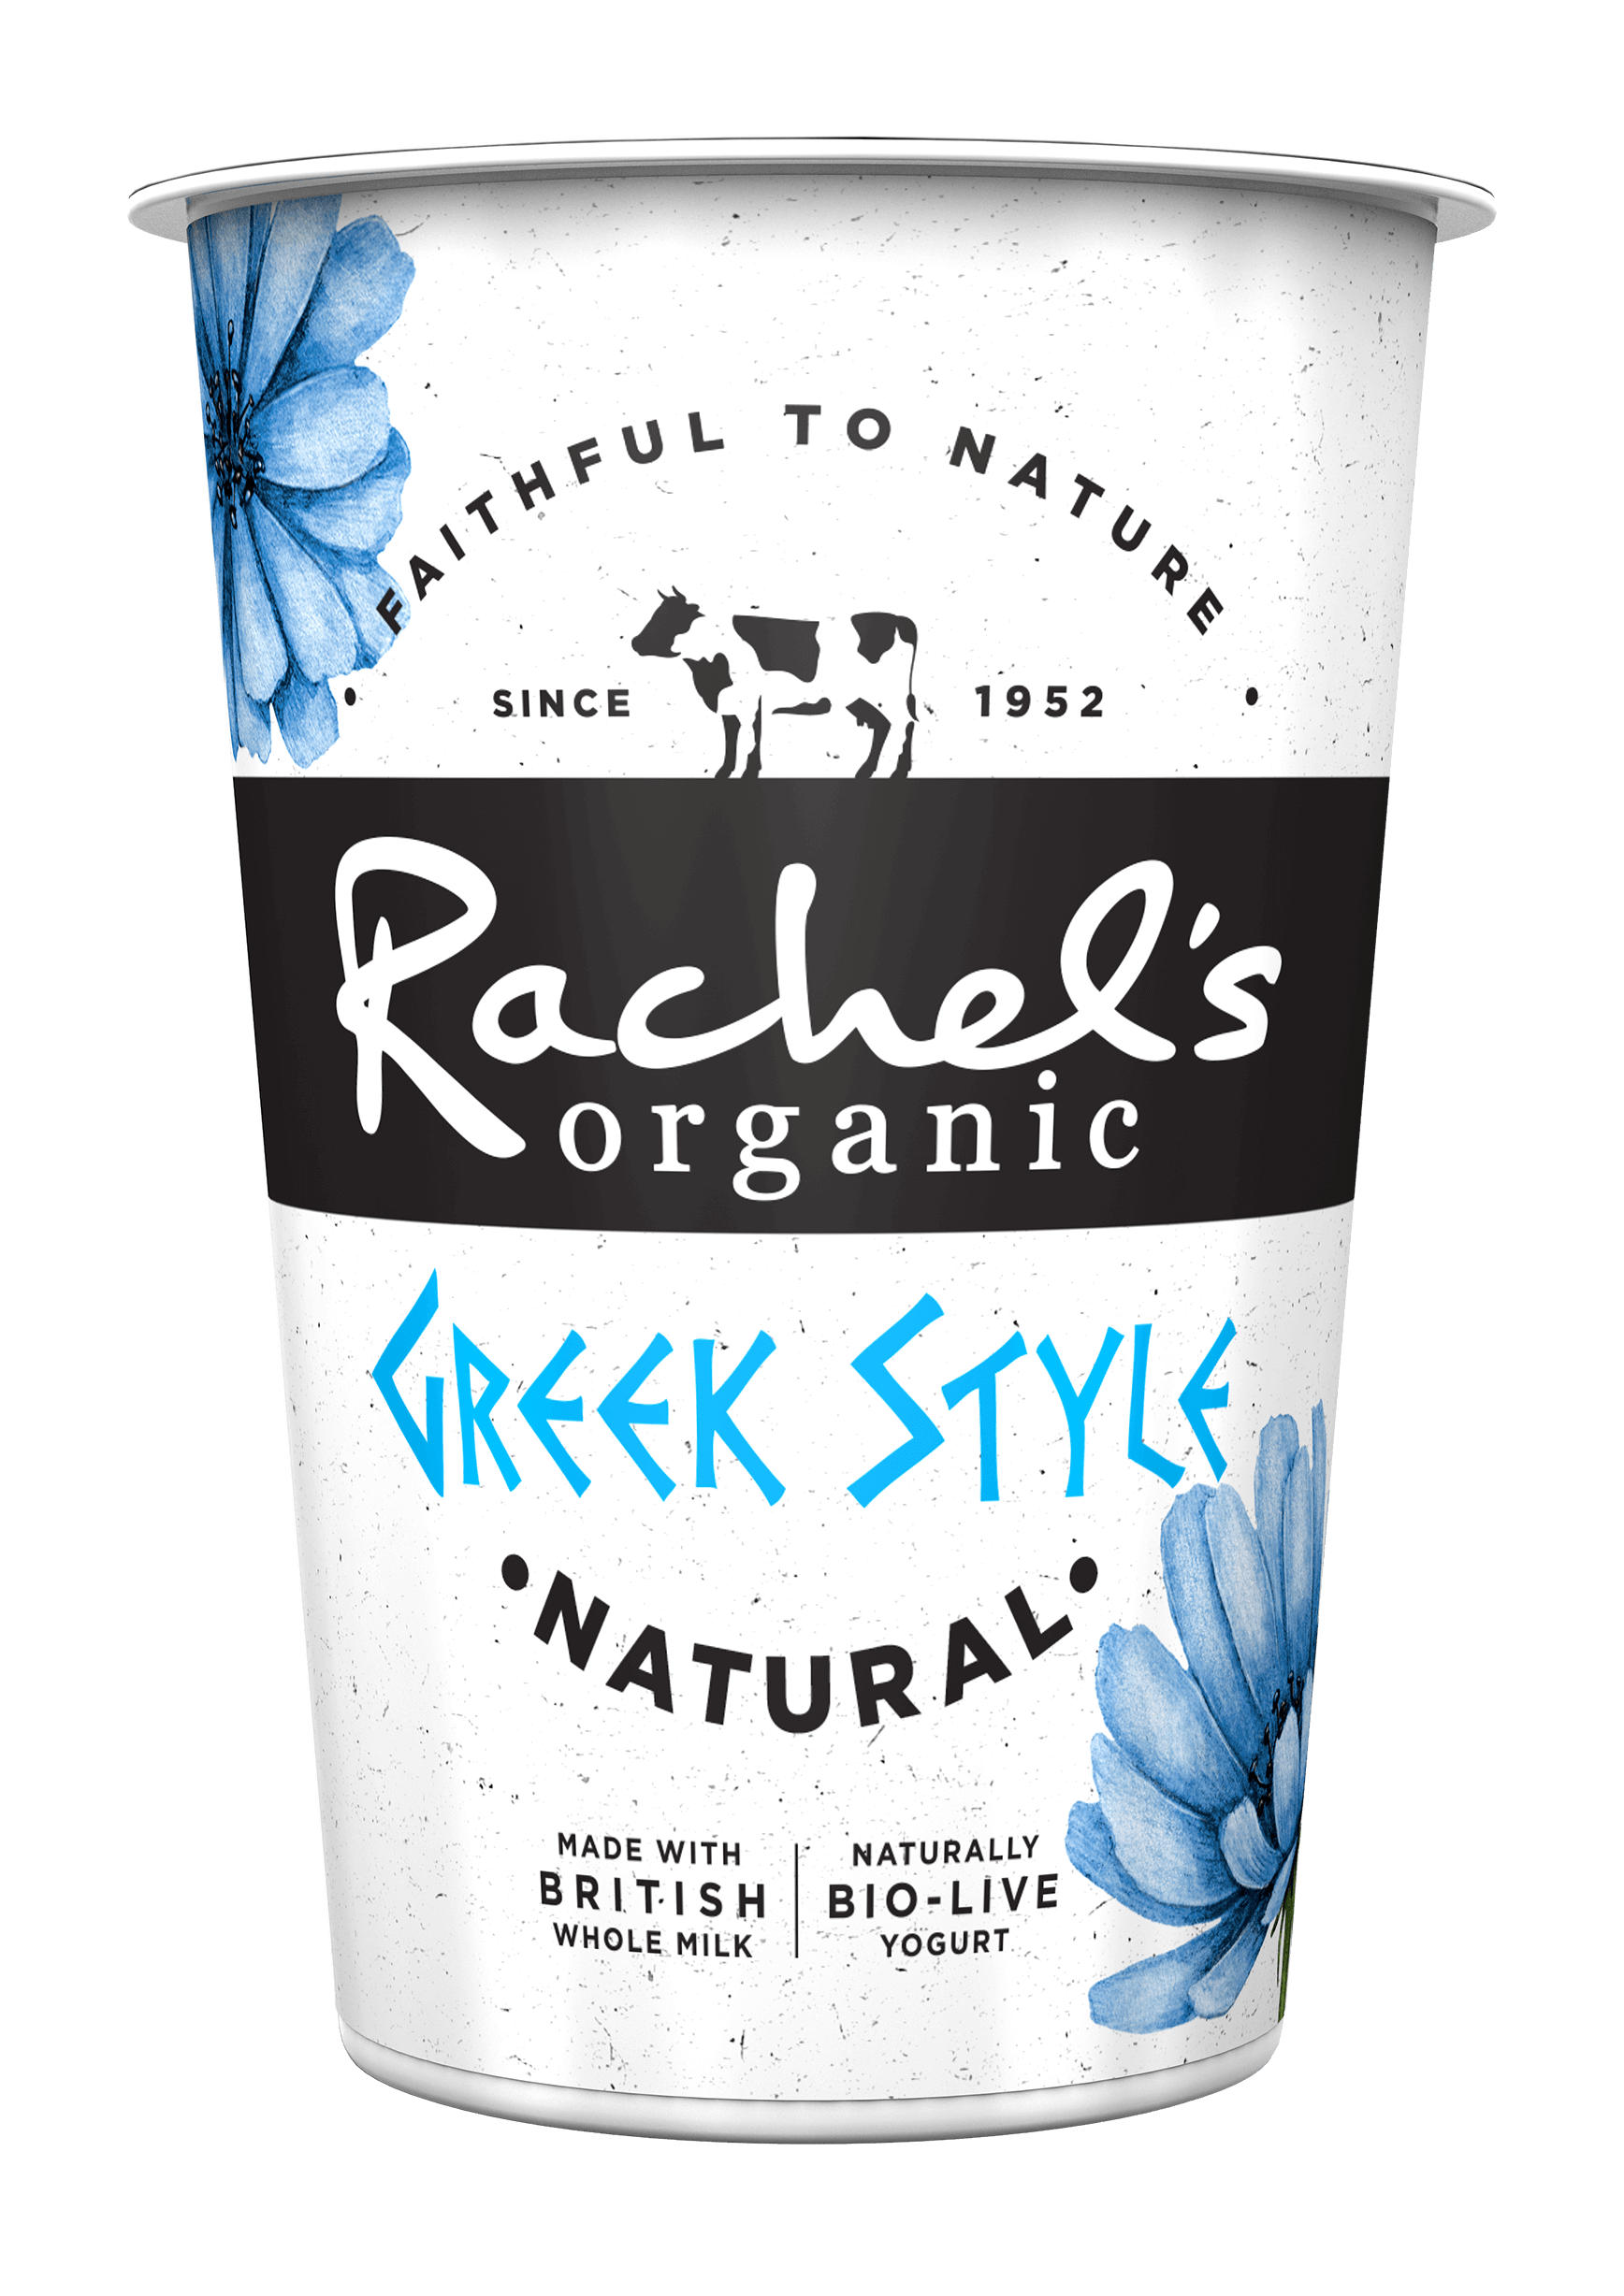 https://www.rachelsorganic.co.uk/wp-content/uploads/2019/12/5021638100752-3D-RACHELS-450G-POT-GREEK-STYLE-NATURAL-FULL-FAT.png